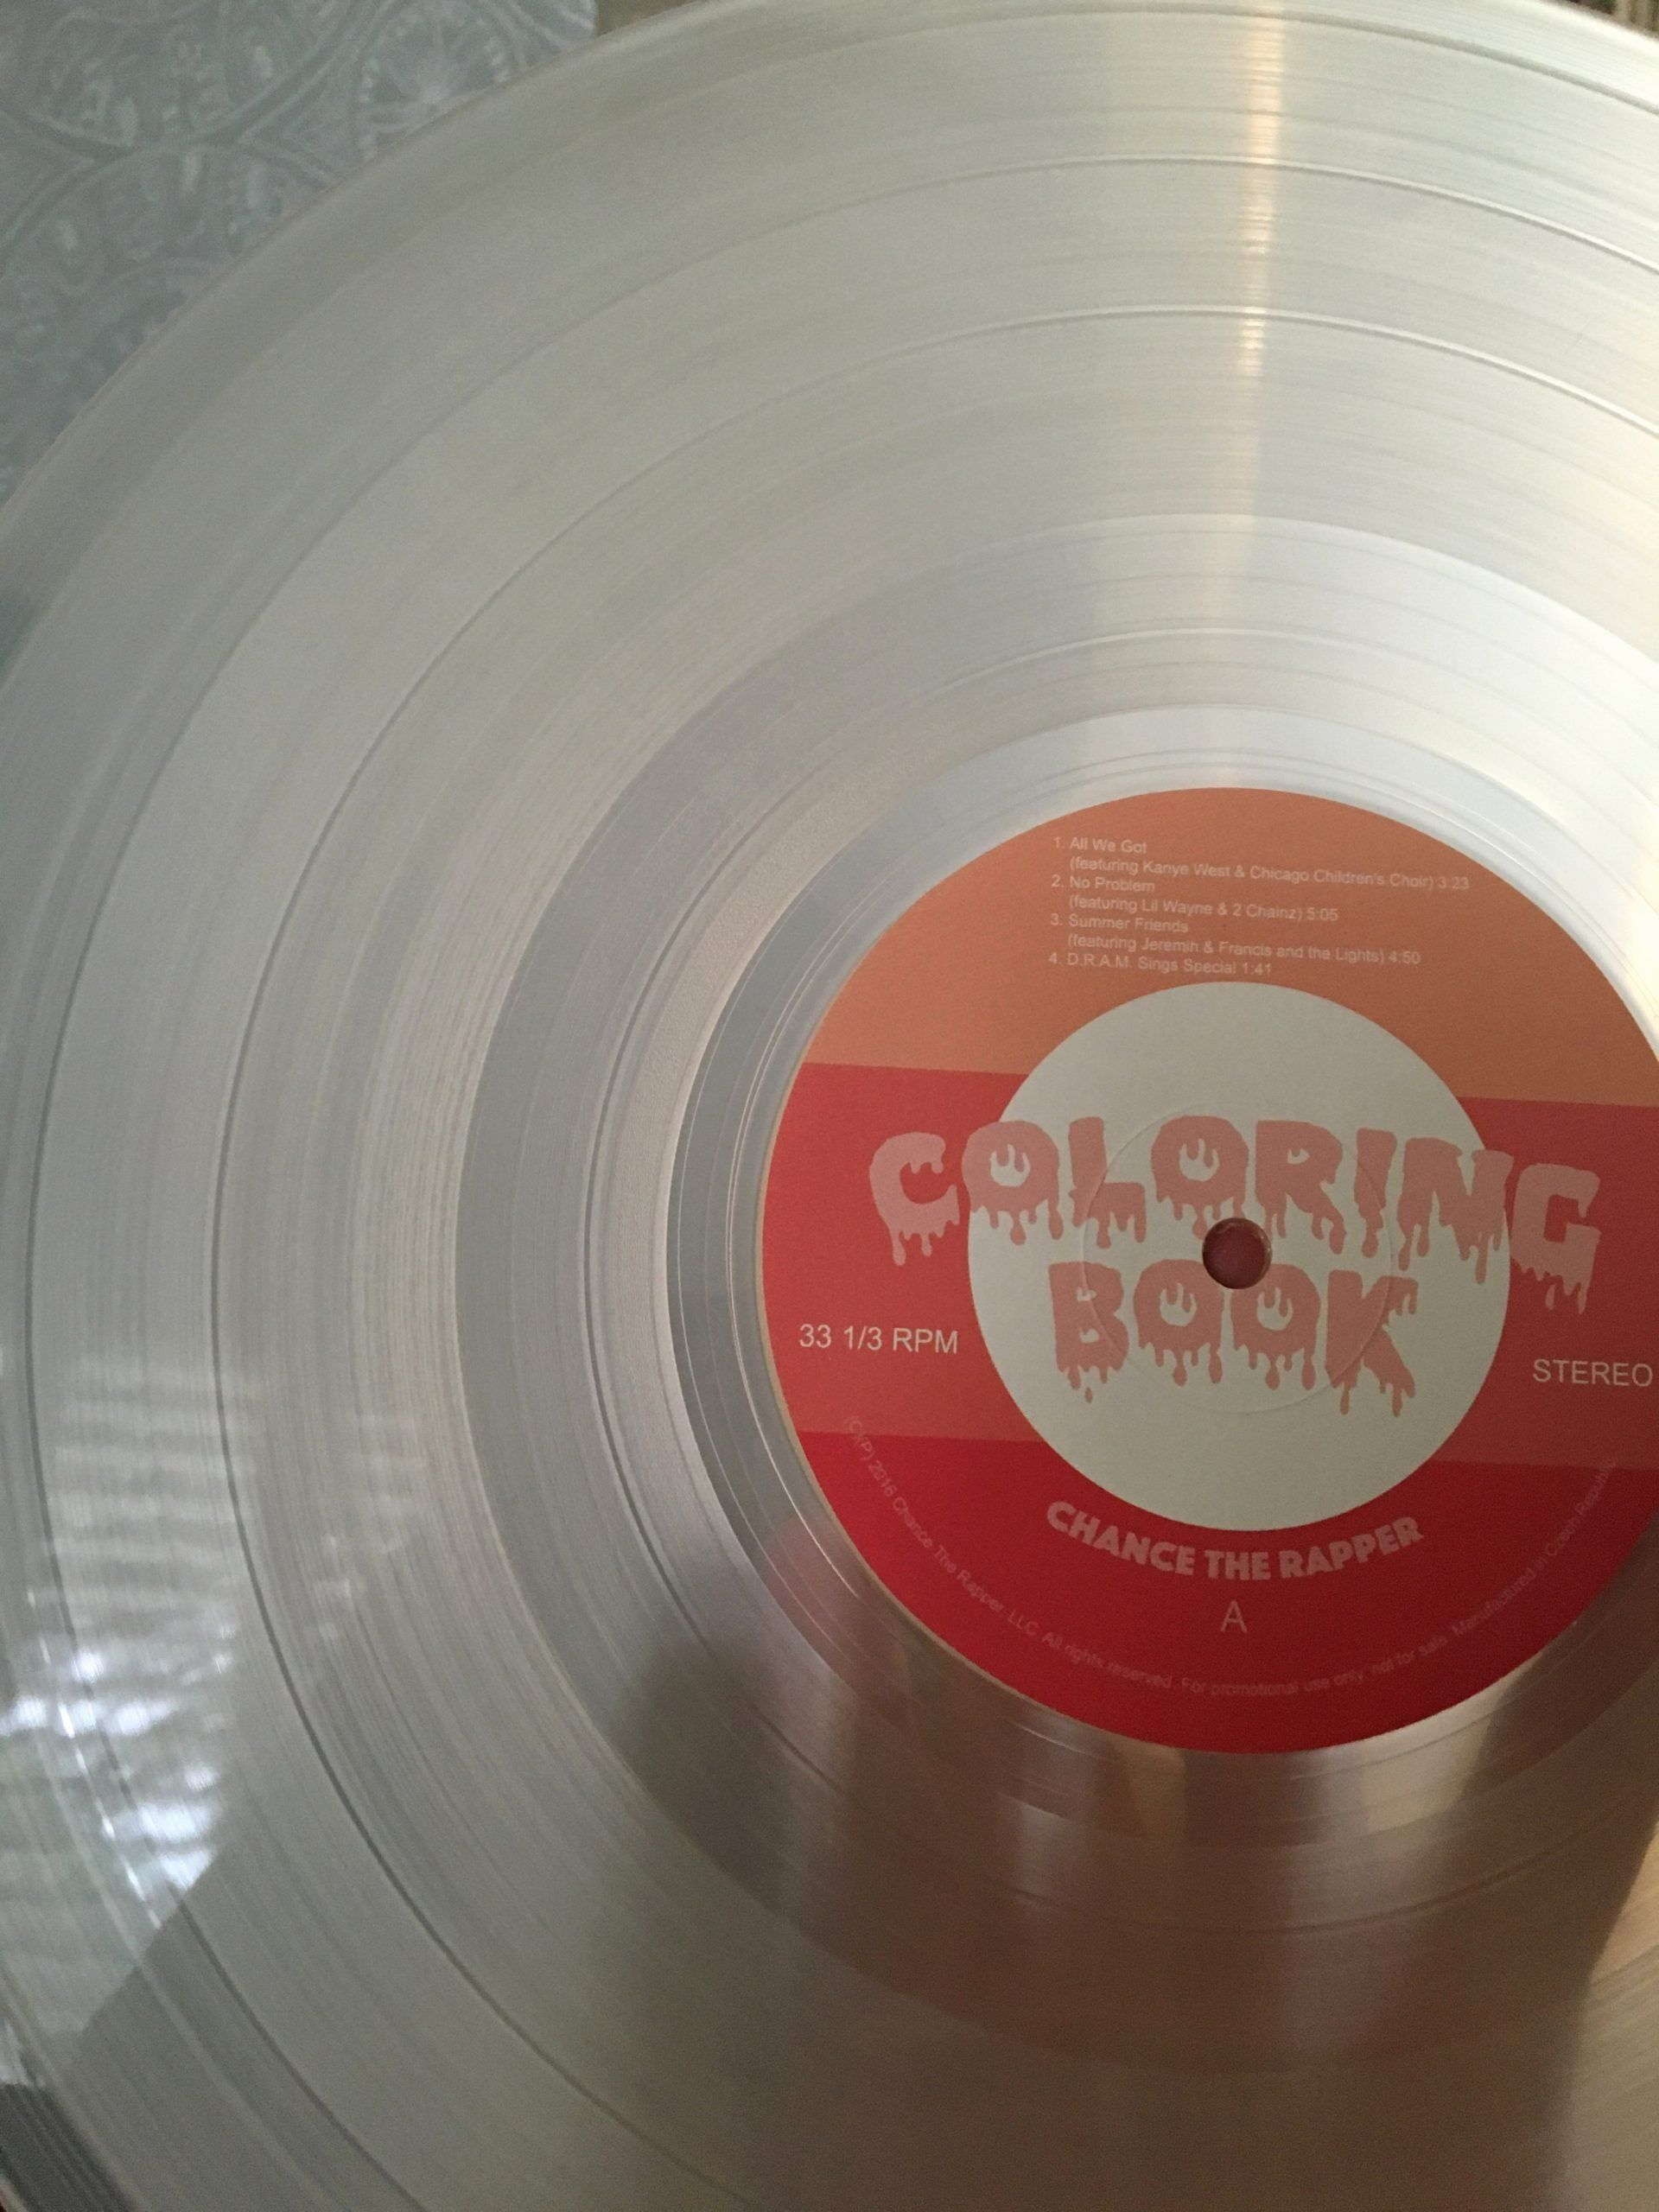 Coloring Book Track List Fresh Hip Hop Vinyl Vinyl Void Coloring Book Chance Coloring Book Album Chance The Rapper